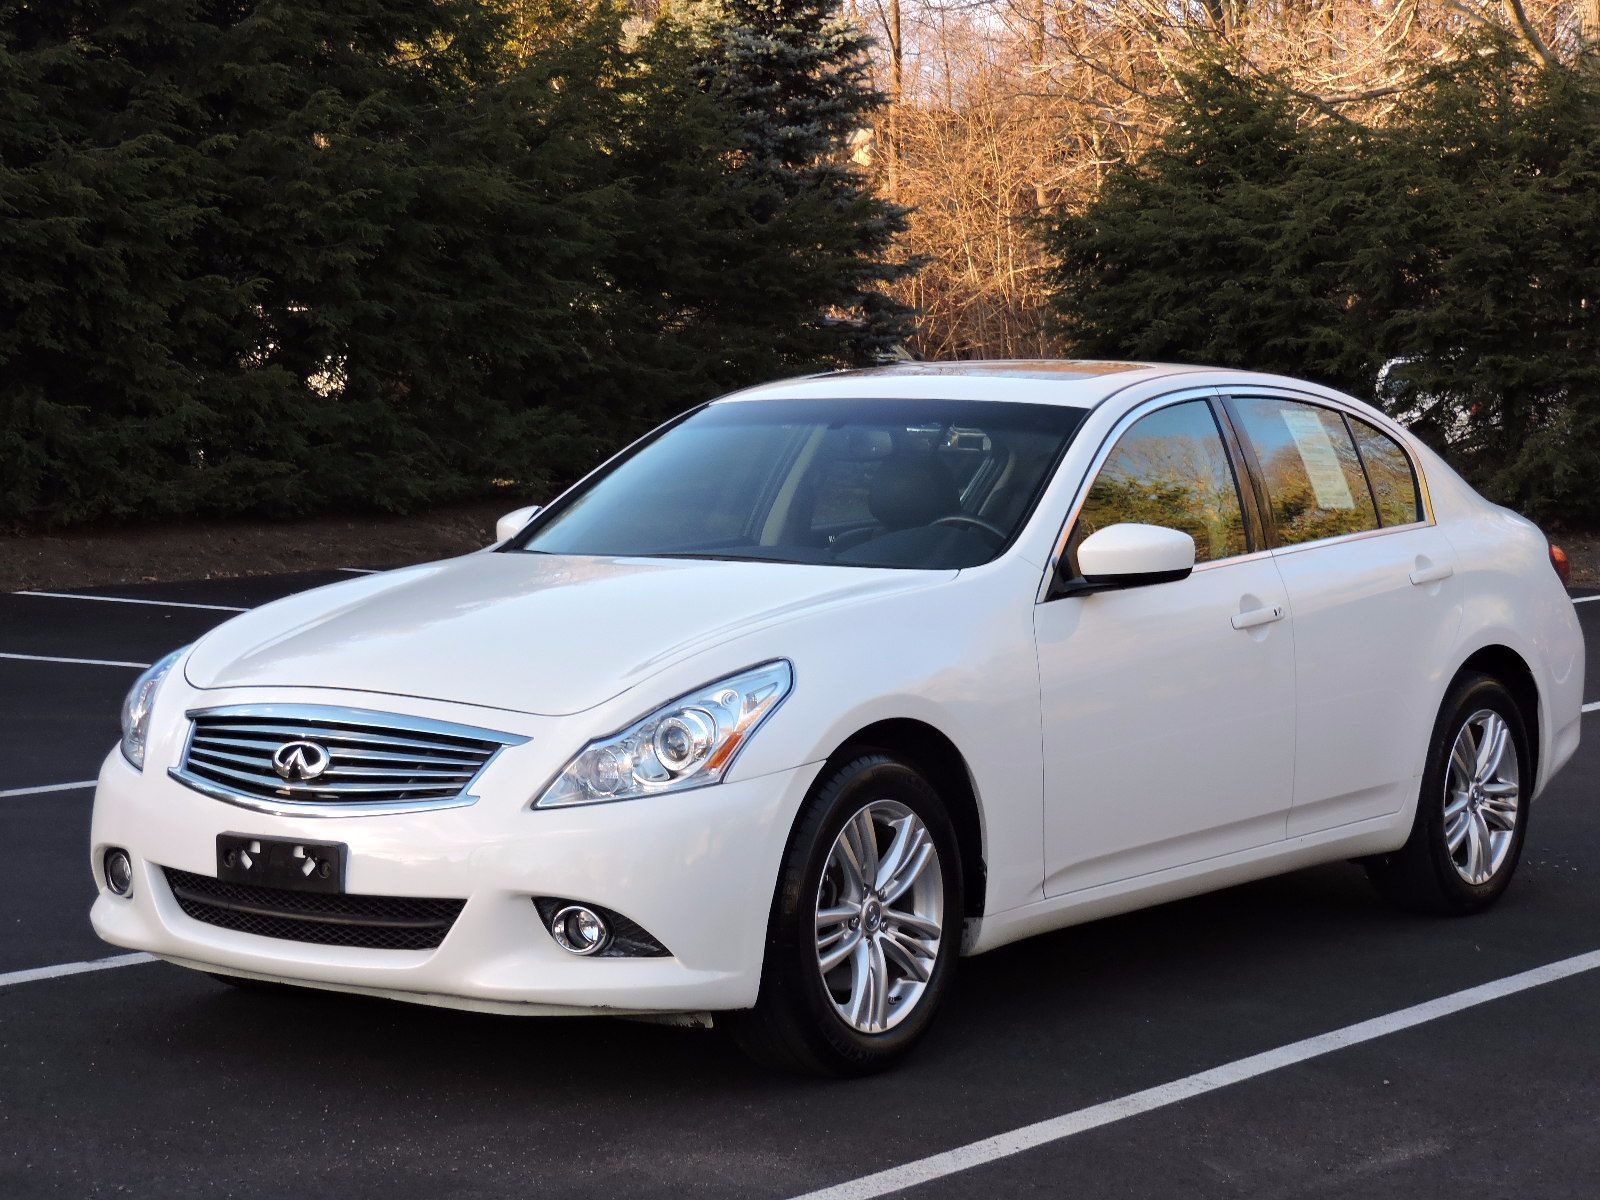 Infiniti Cars Usa >> Used 2012 Infiniti G37 Sedan x at Auto House USA Saugus